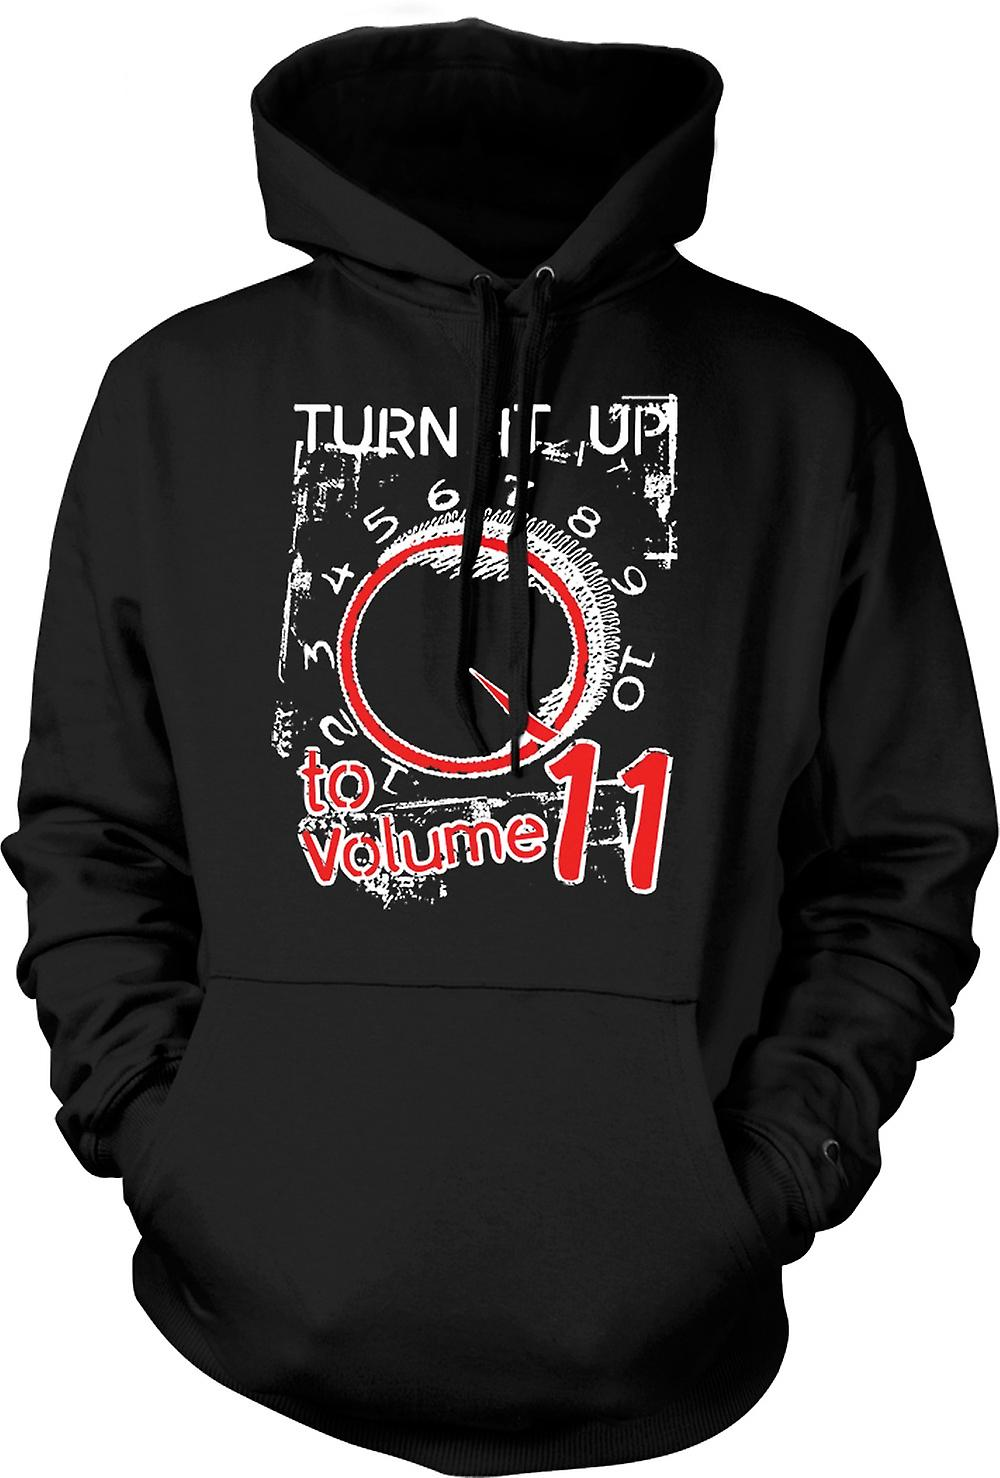 Barn Hoodie - Spinal Tap volym 11 - Funny